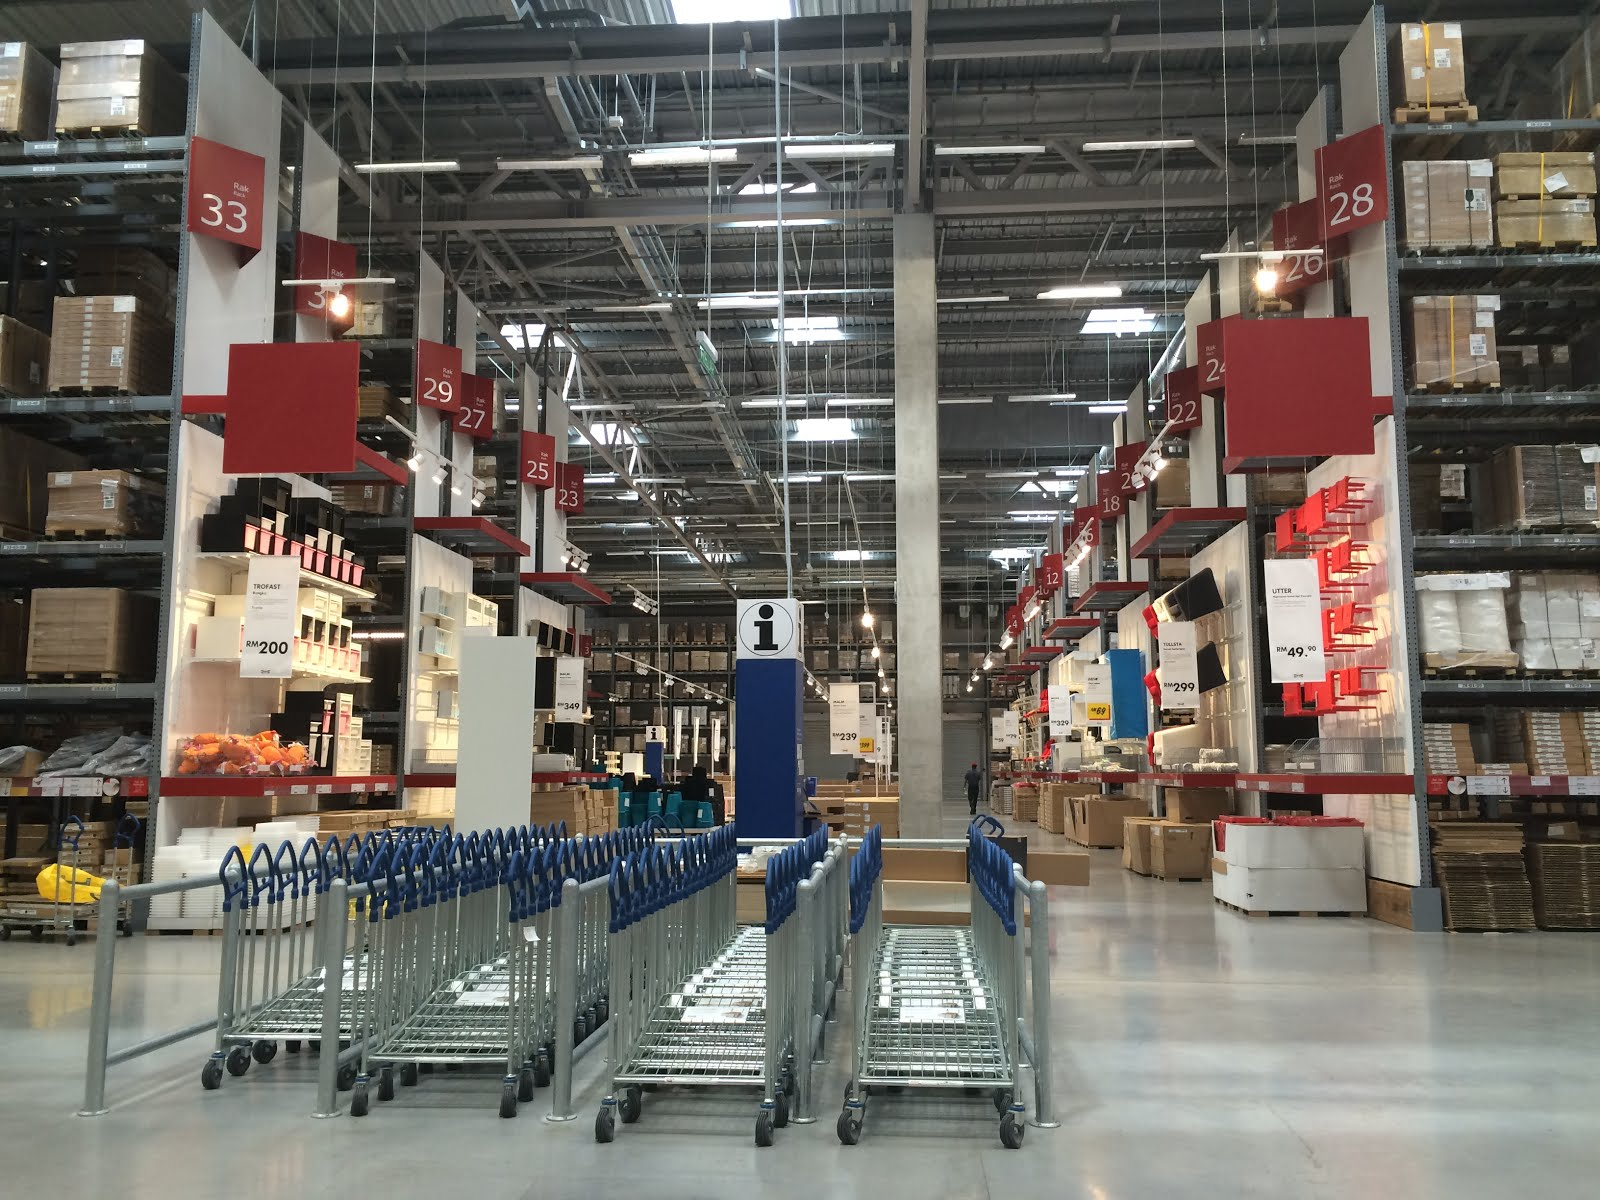 Chinese New Year Shopping At Ikea Cheras ~ Parenting Times